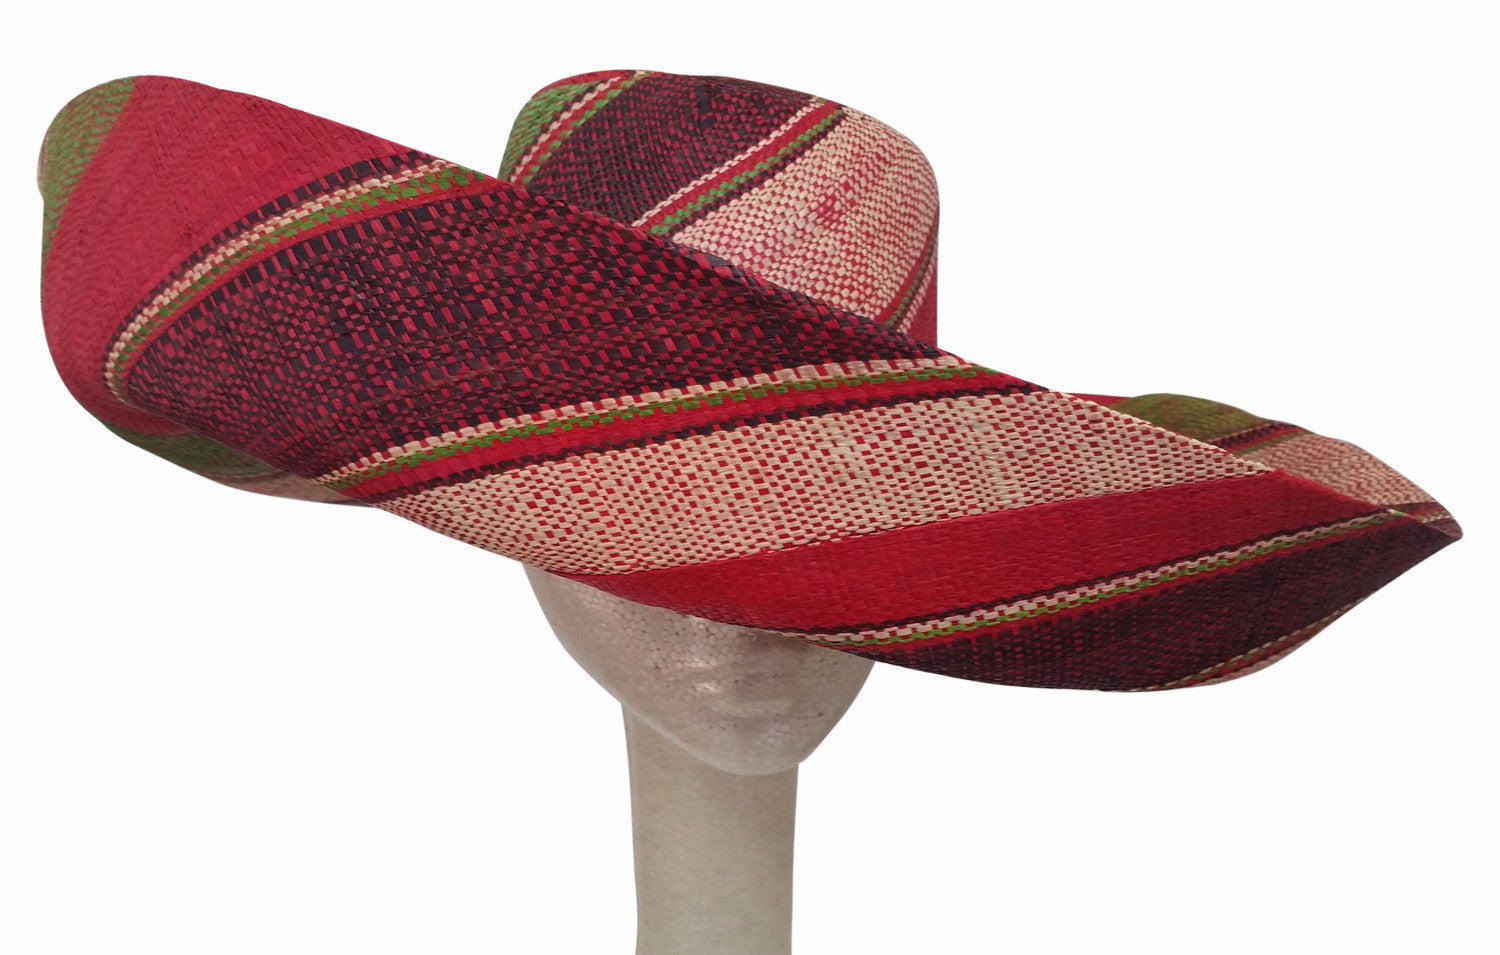 Nontle: Hand Woven Multicolored Madagascar Big Brim Raffia Sun Hat